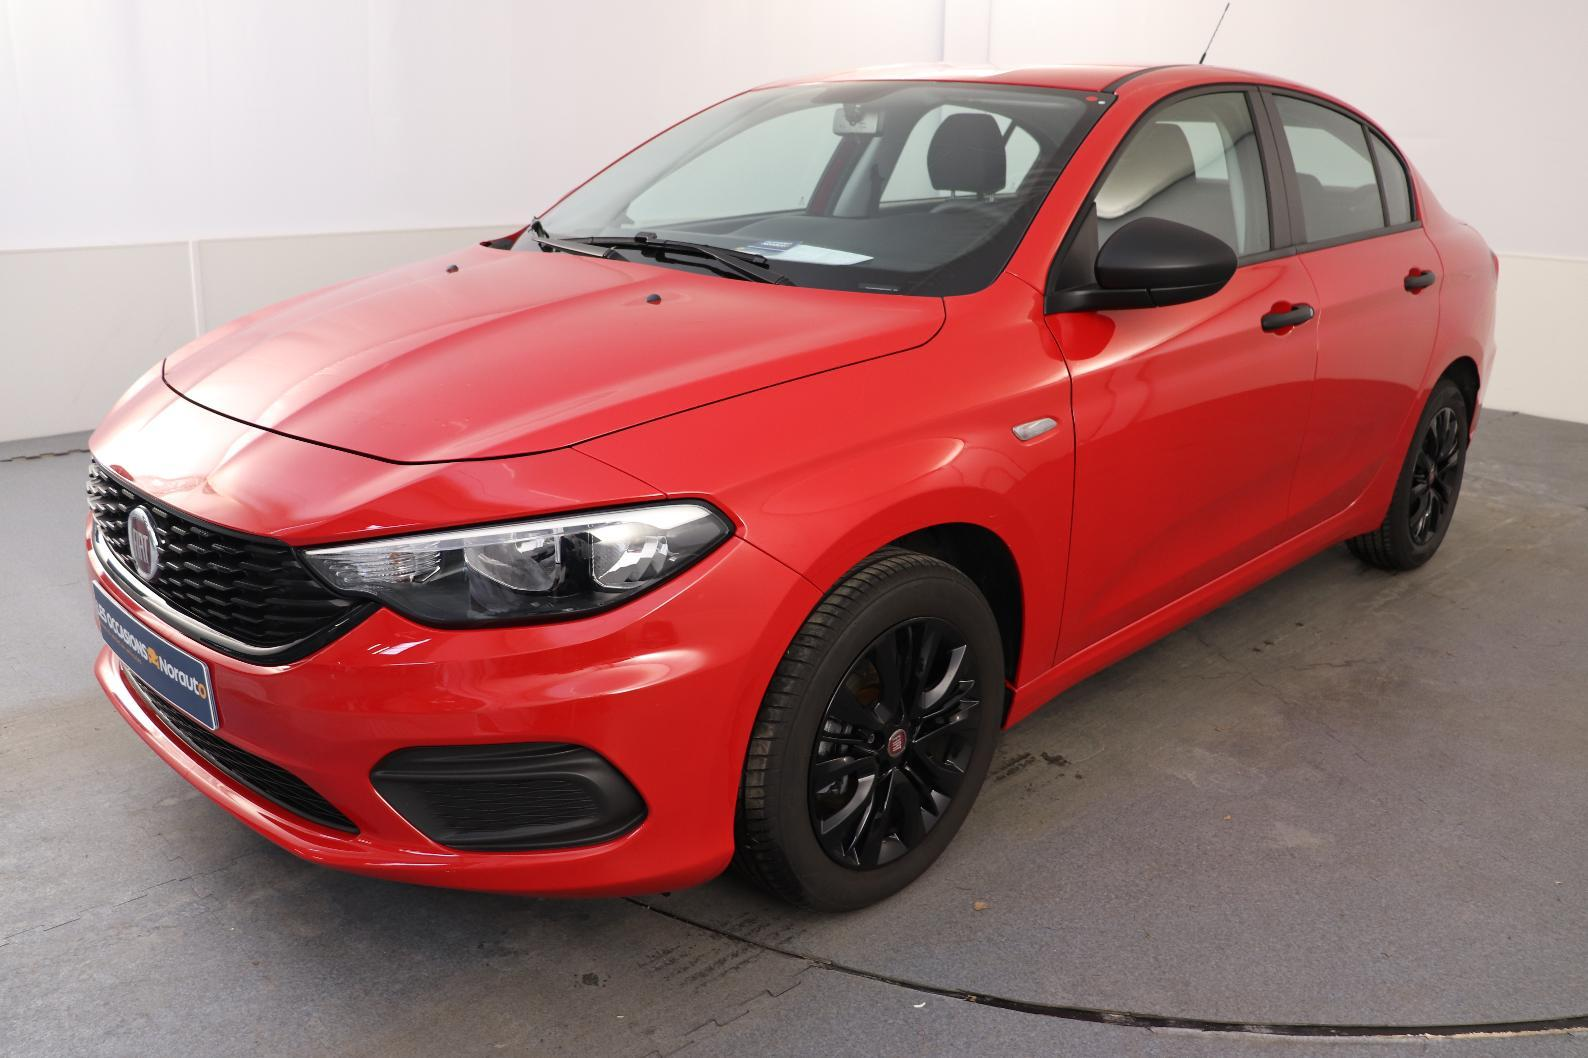 FIAT TIPO MY20 Tipo 1.4 95 ch S&S